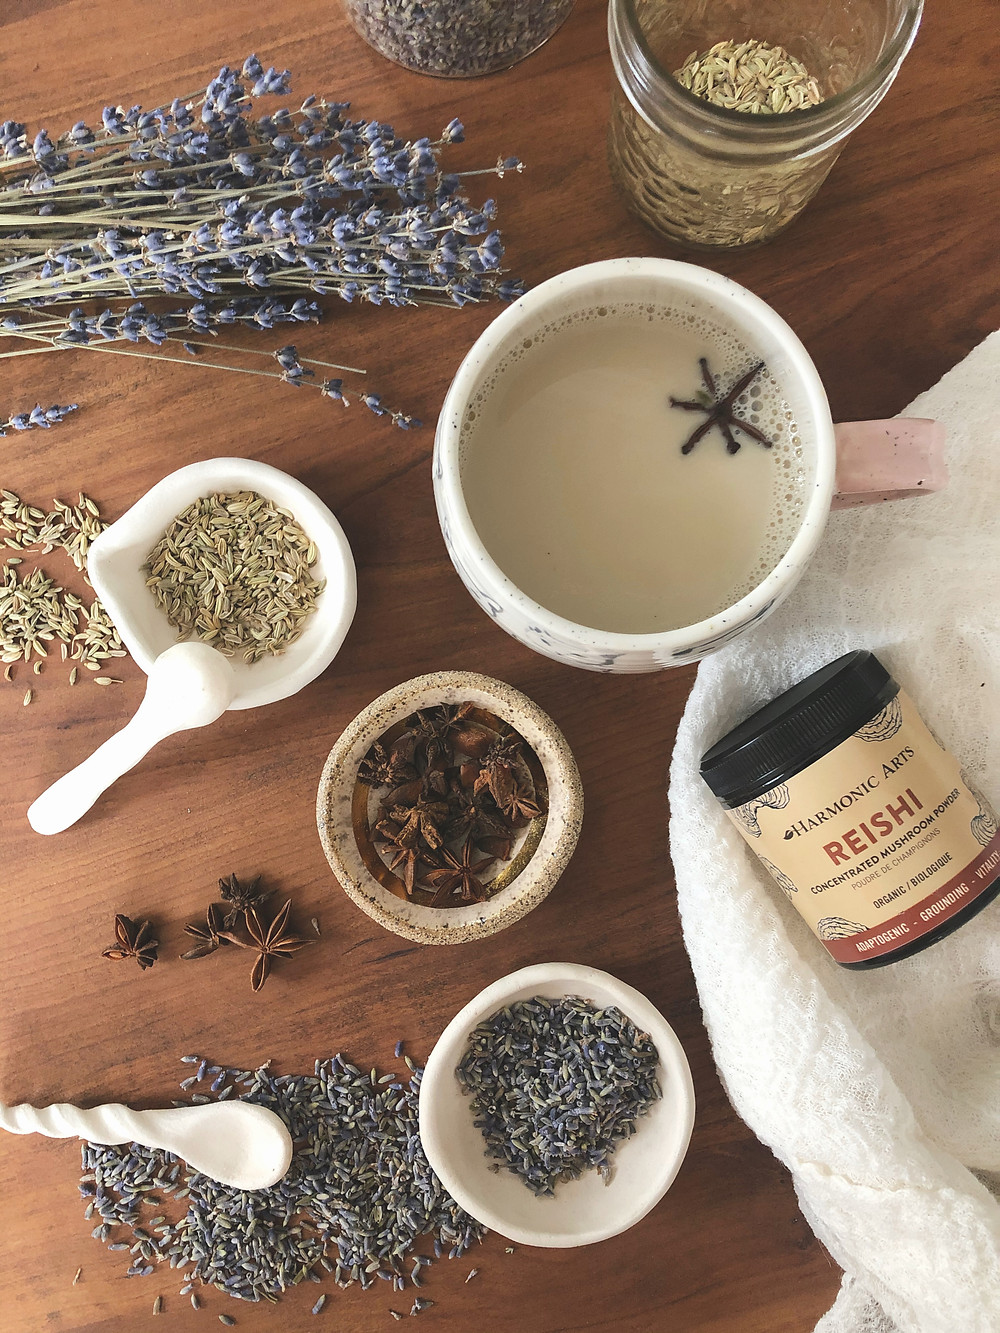 harmonic arts reishi powder, loose fennel, lavender and star anise on table with oat milk infused with herbs for mercury retrograde